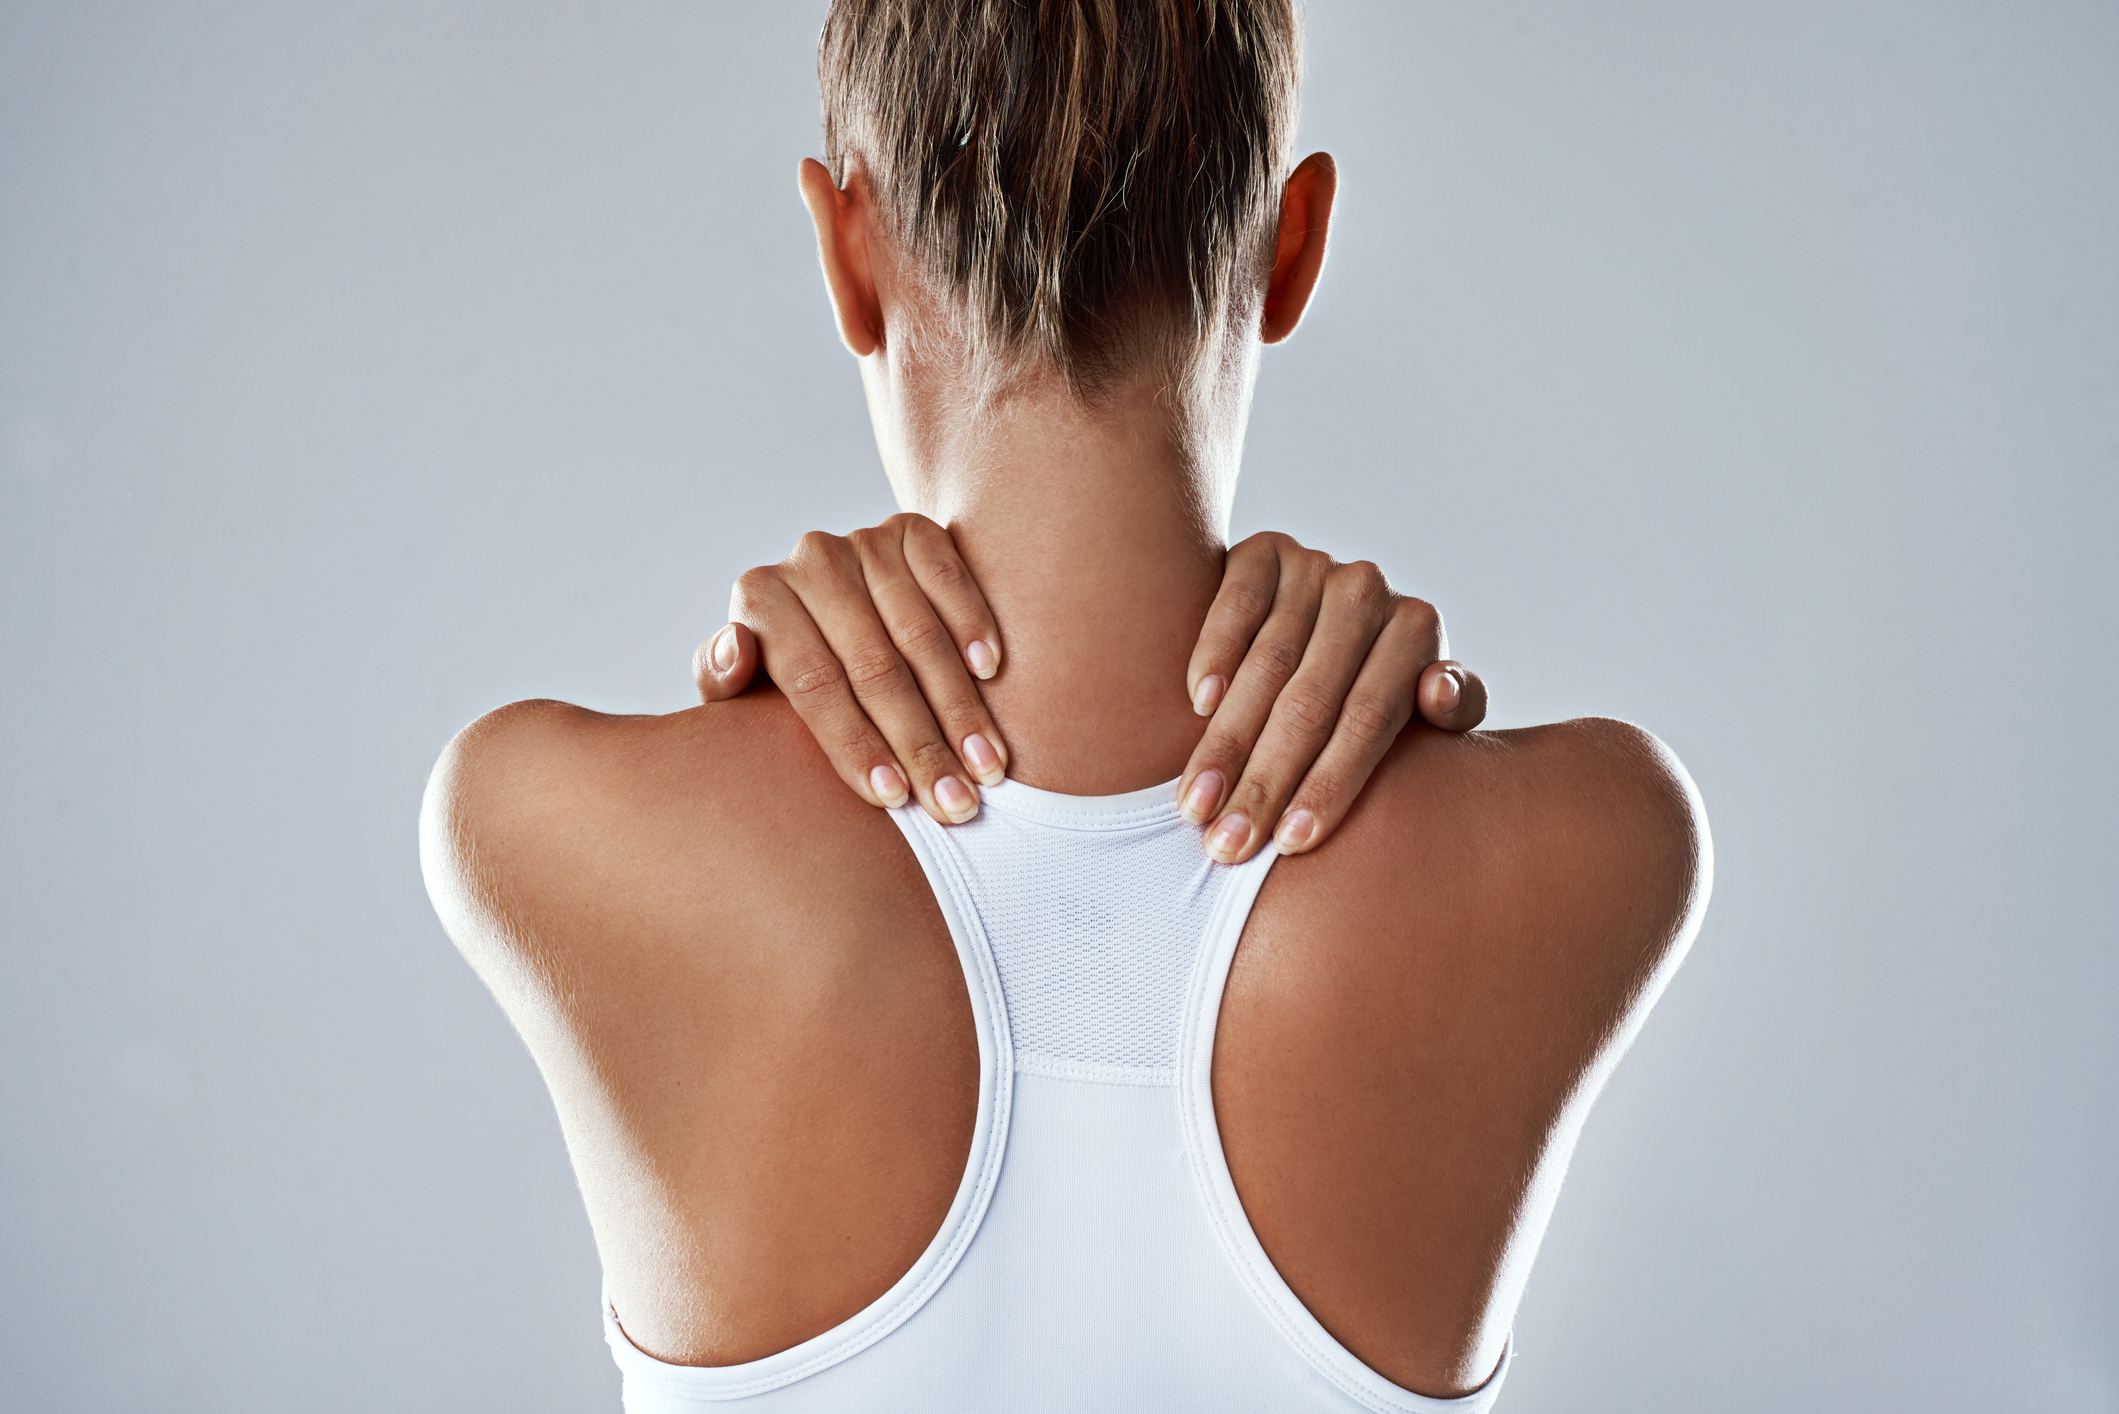 Studio shot of an athletic young woman holding her neck in pain against a grey background